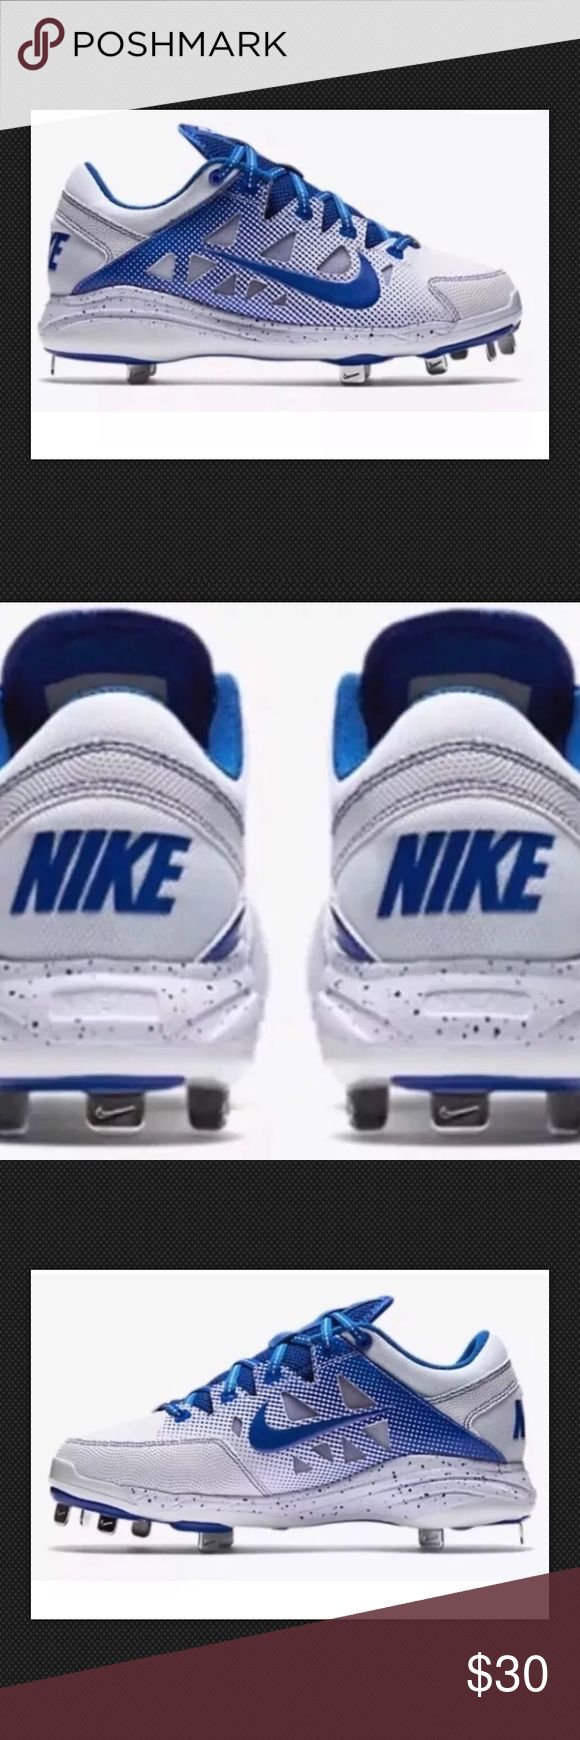 Nike Women's Hyperdiamond Pro Softball Metal Nike Women's Hyperdiamond Pro Softball Metal Cleats Blue Size 9 (684693-141) NEVER BEEN WORN!! NEW WITHOUT BOX Nike Shoes Athletic Shoes